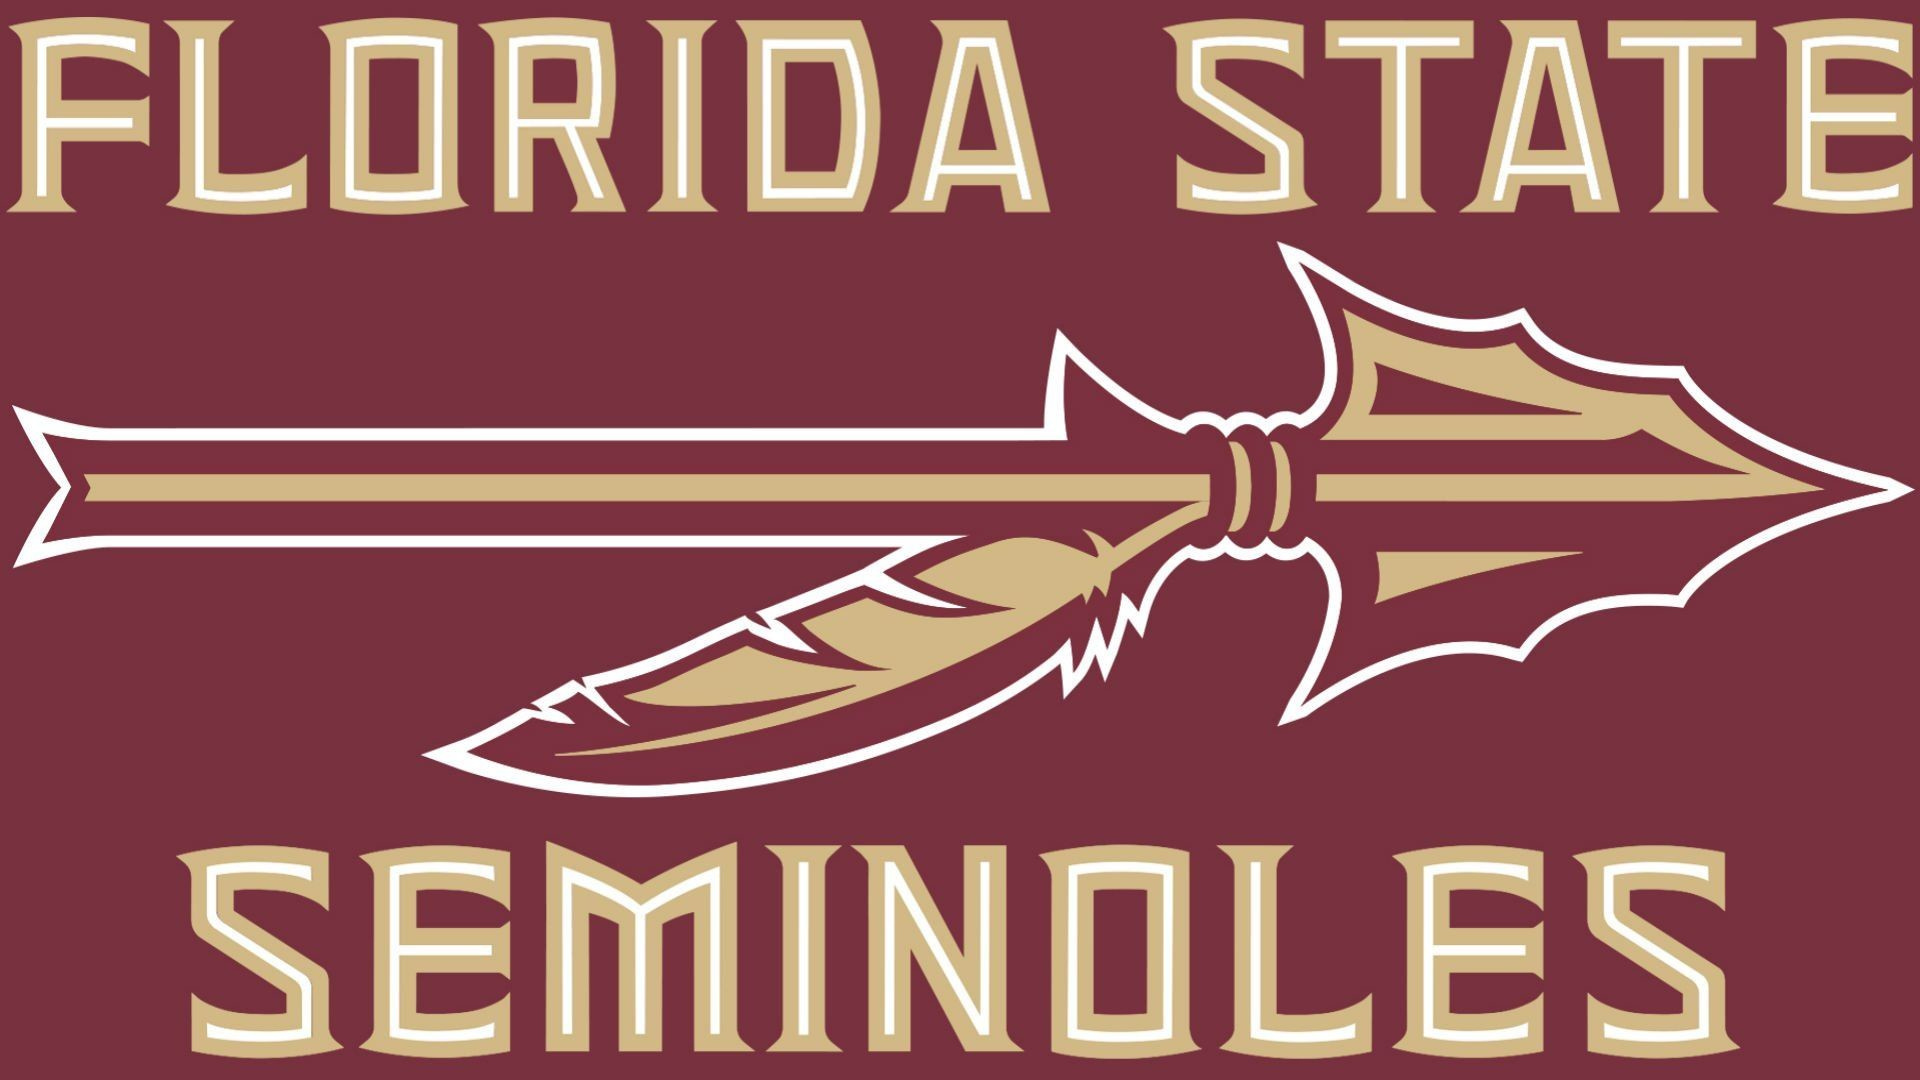 1920x1080 Florida State Wallpapers | Wallpapers, Backgrounds, Images, Art ..